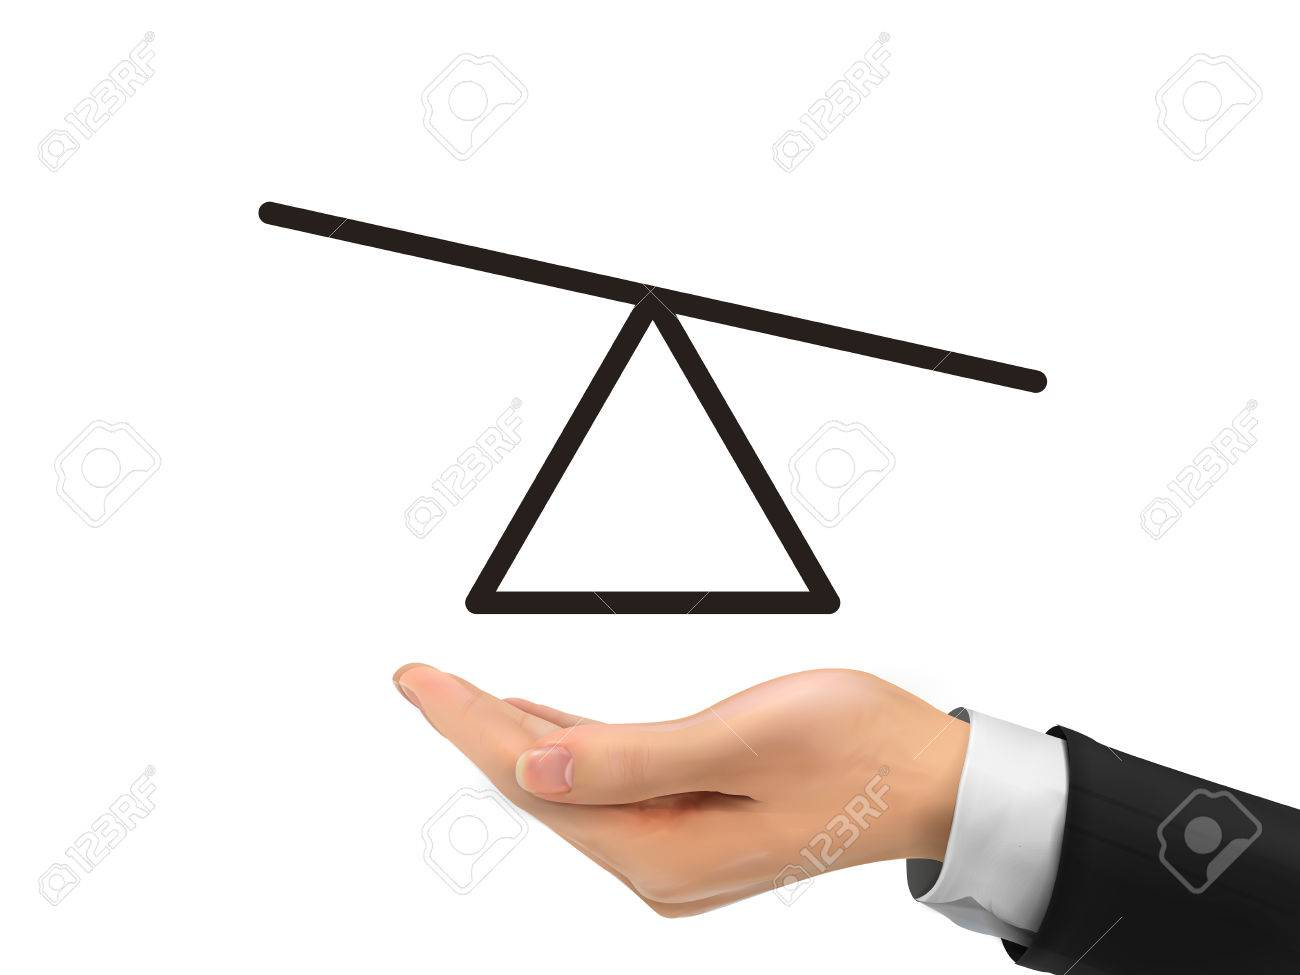 Seesaw Diagram Holding By Realistic Hand Over White Background